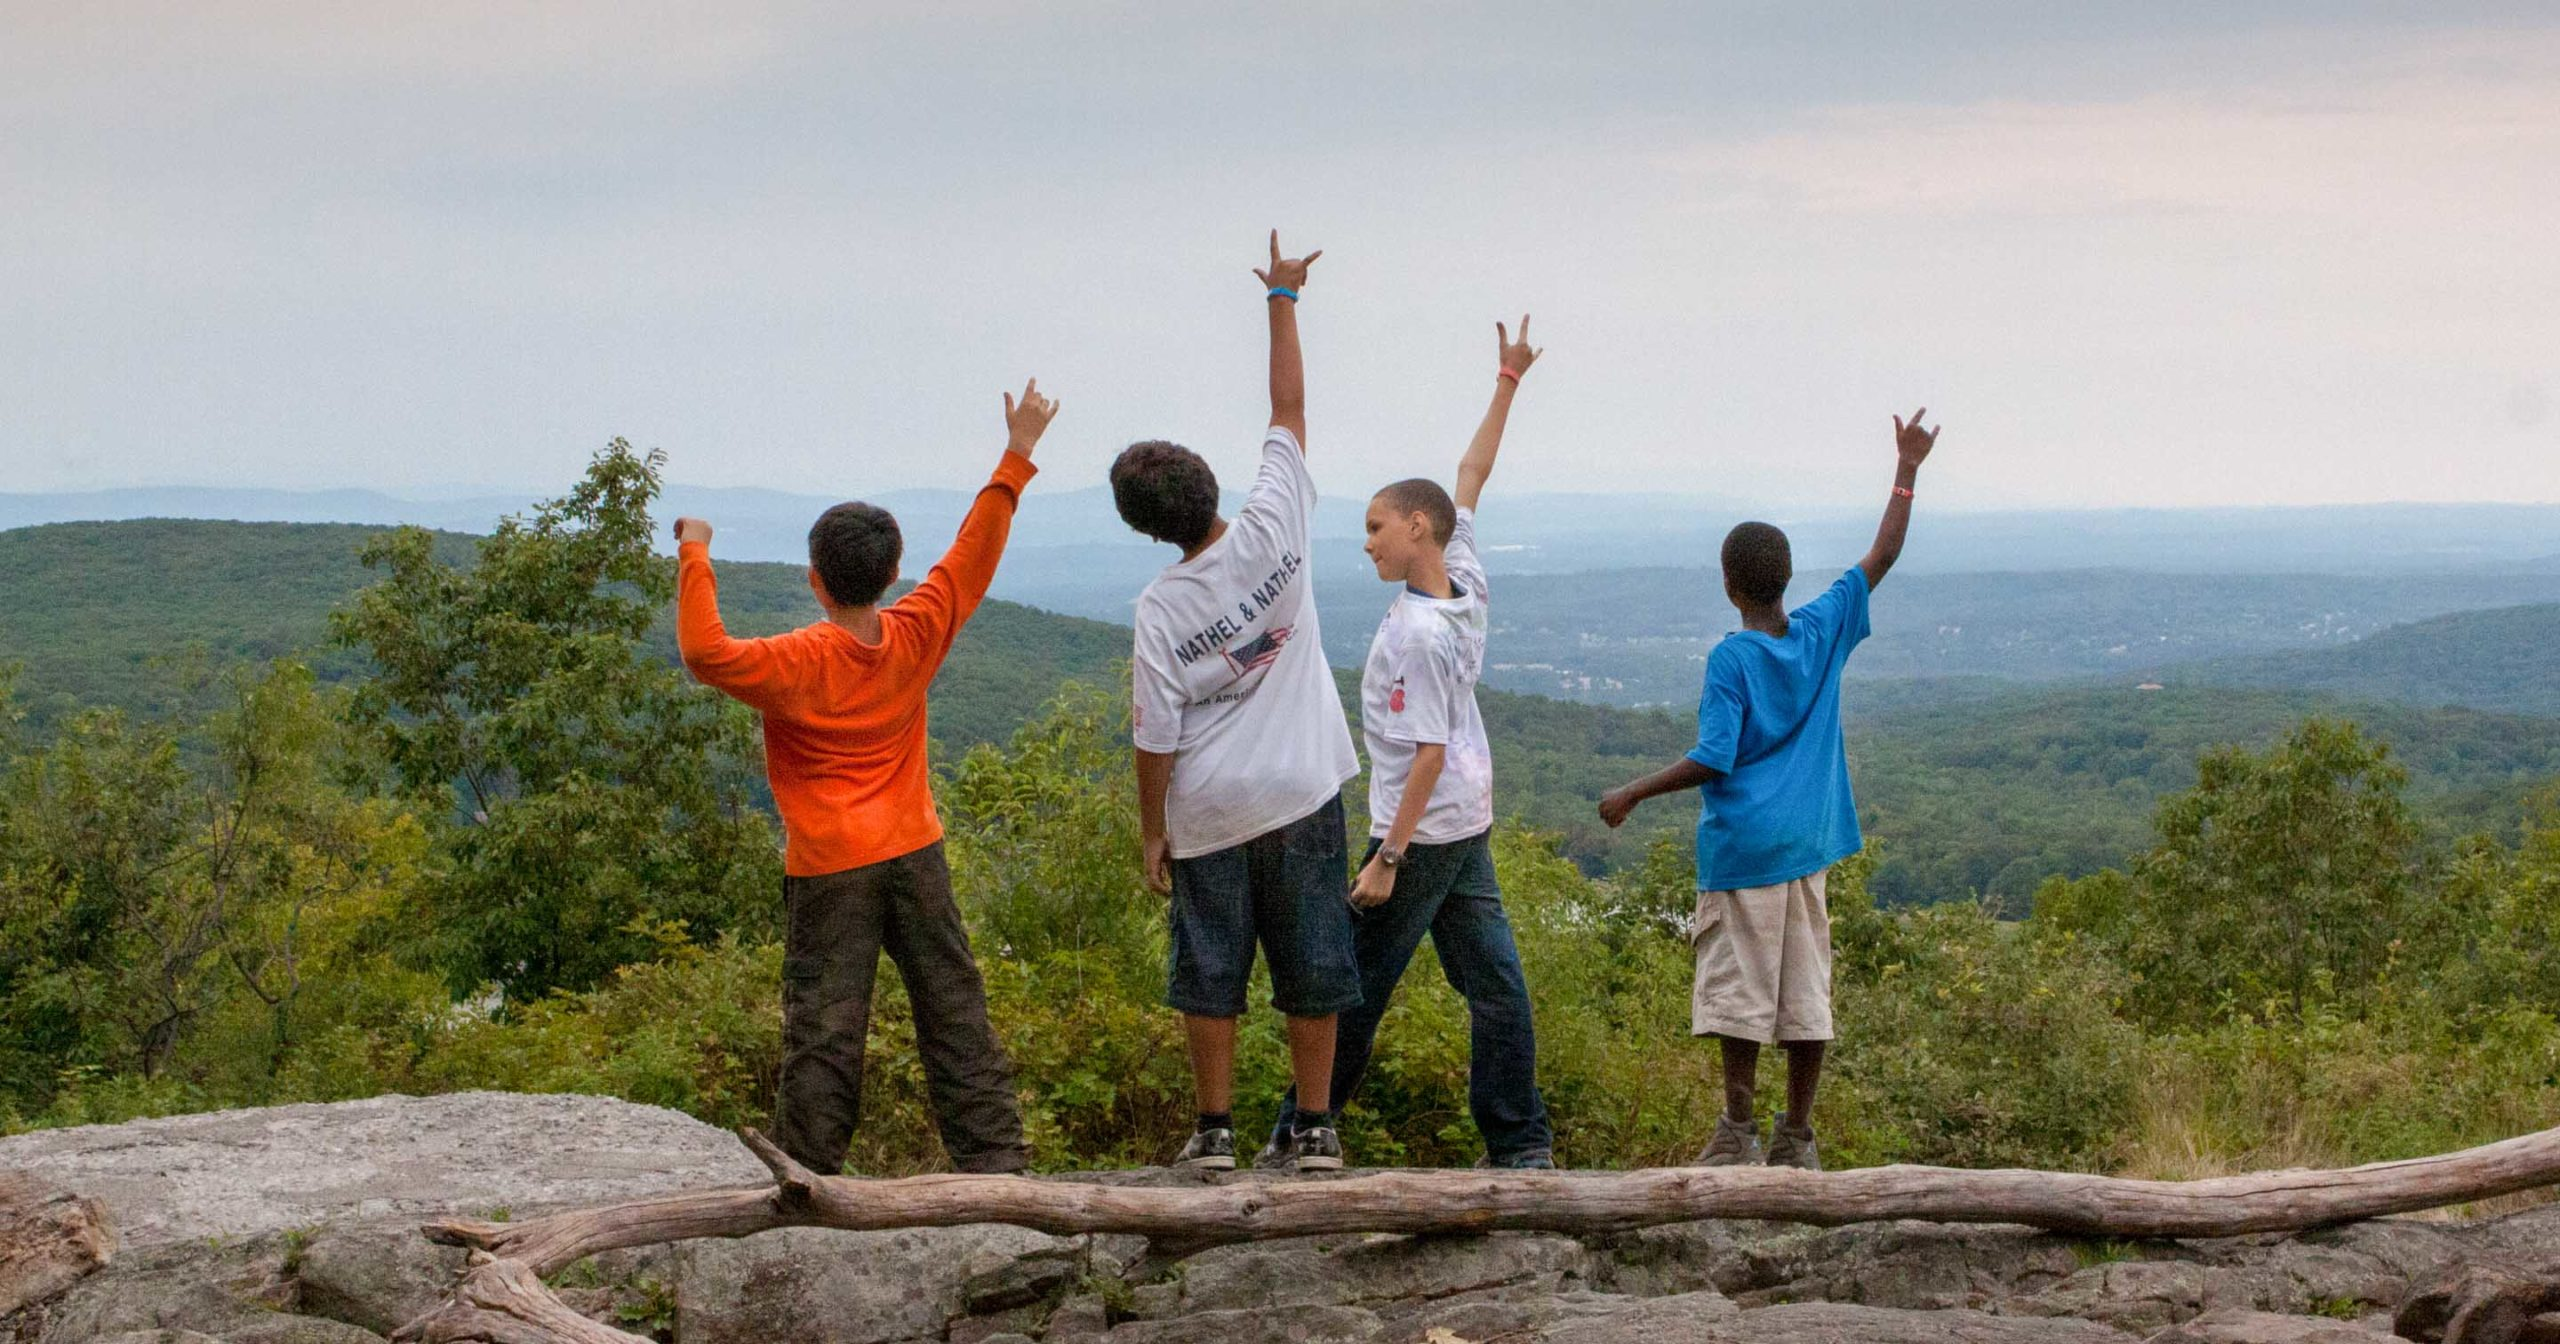 Camp HM campers hiking